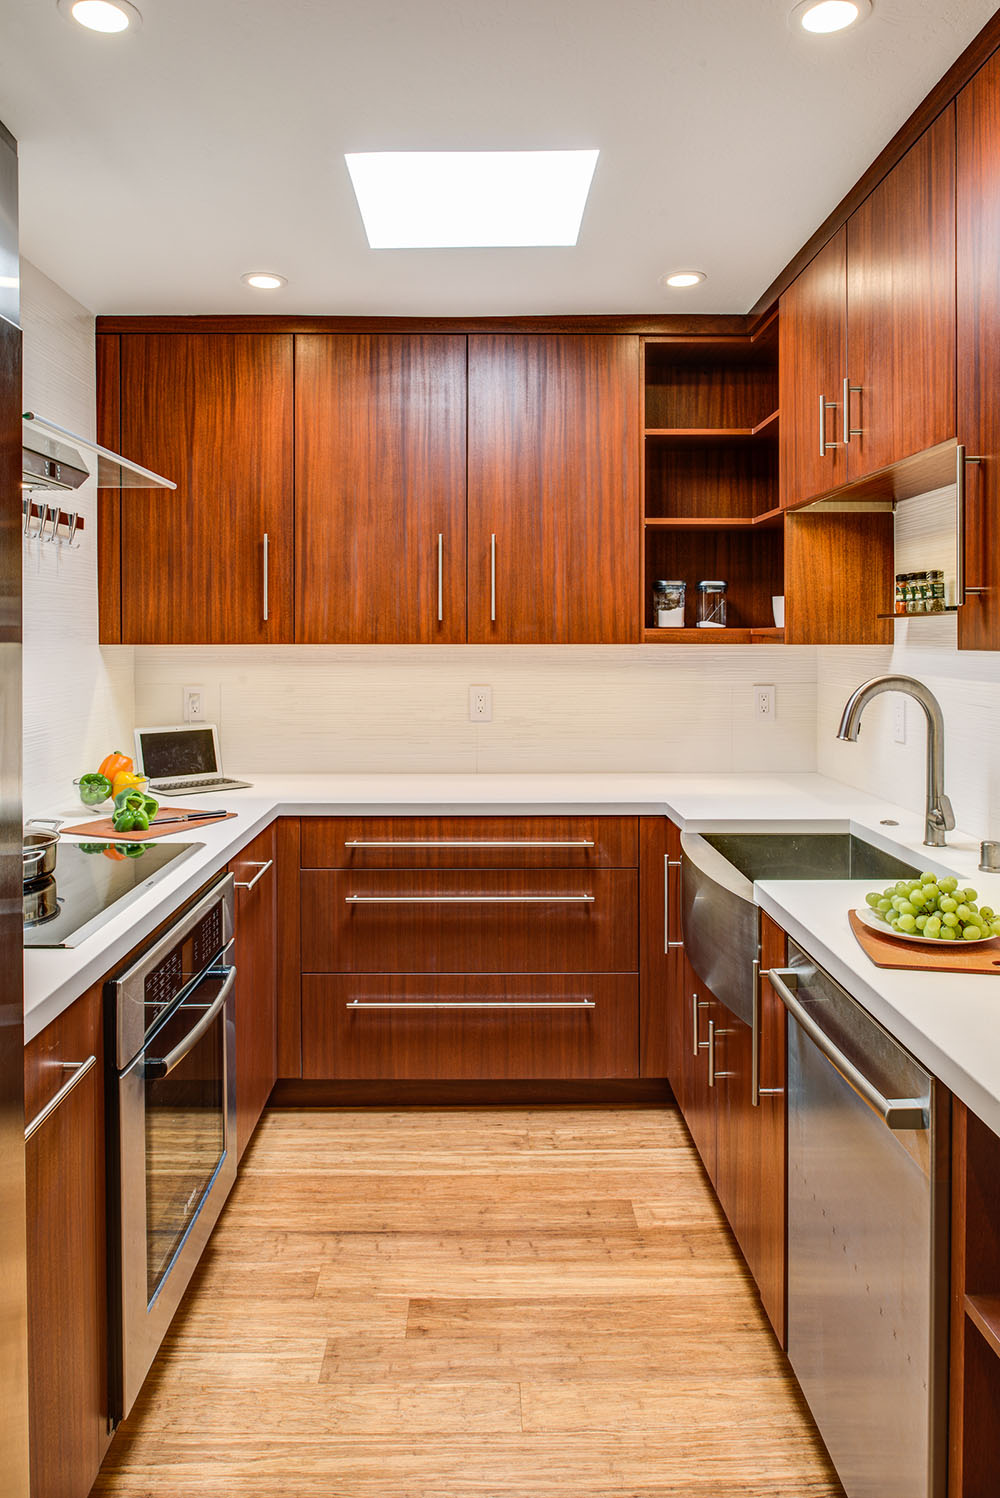 <strong>Compact Condo kitchen</strong> / Finish: Autumn Cherry Stain on Mahogany / Door: Autumn Cherry Stain on Mahogany